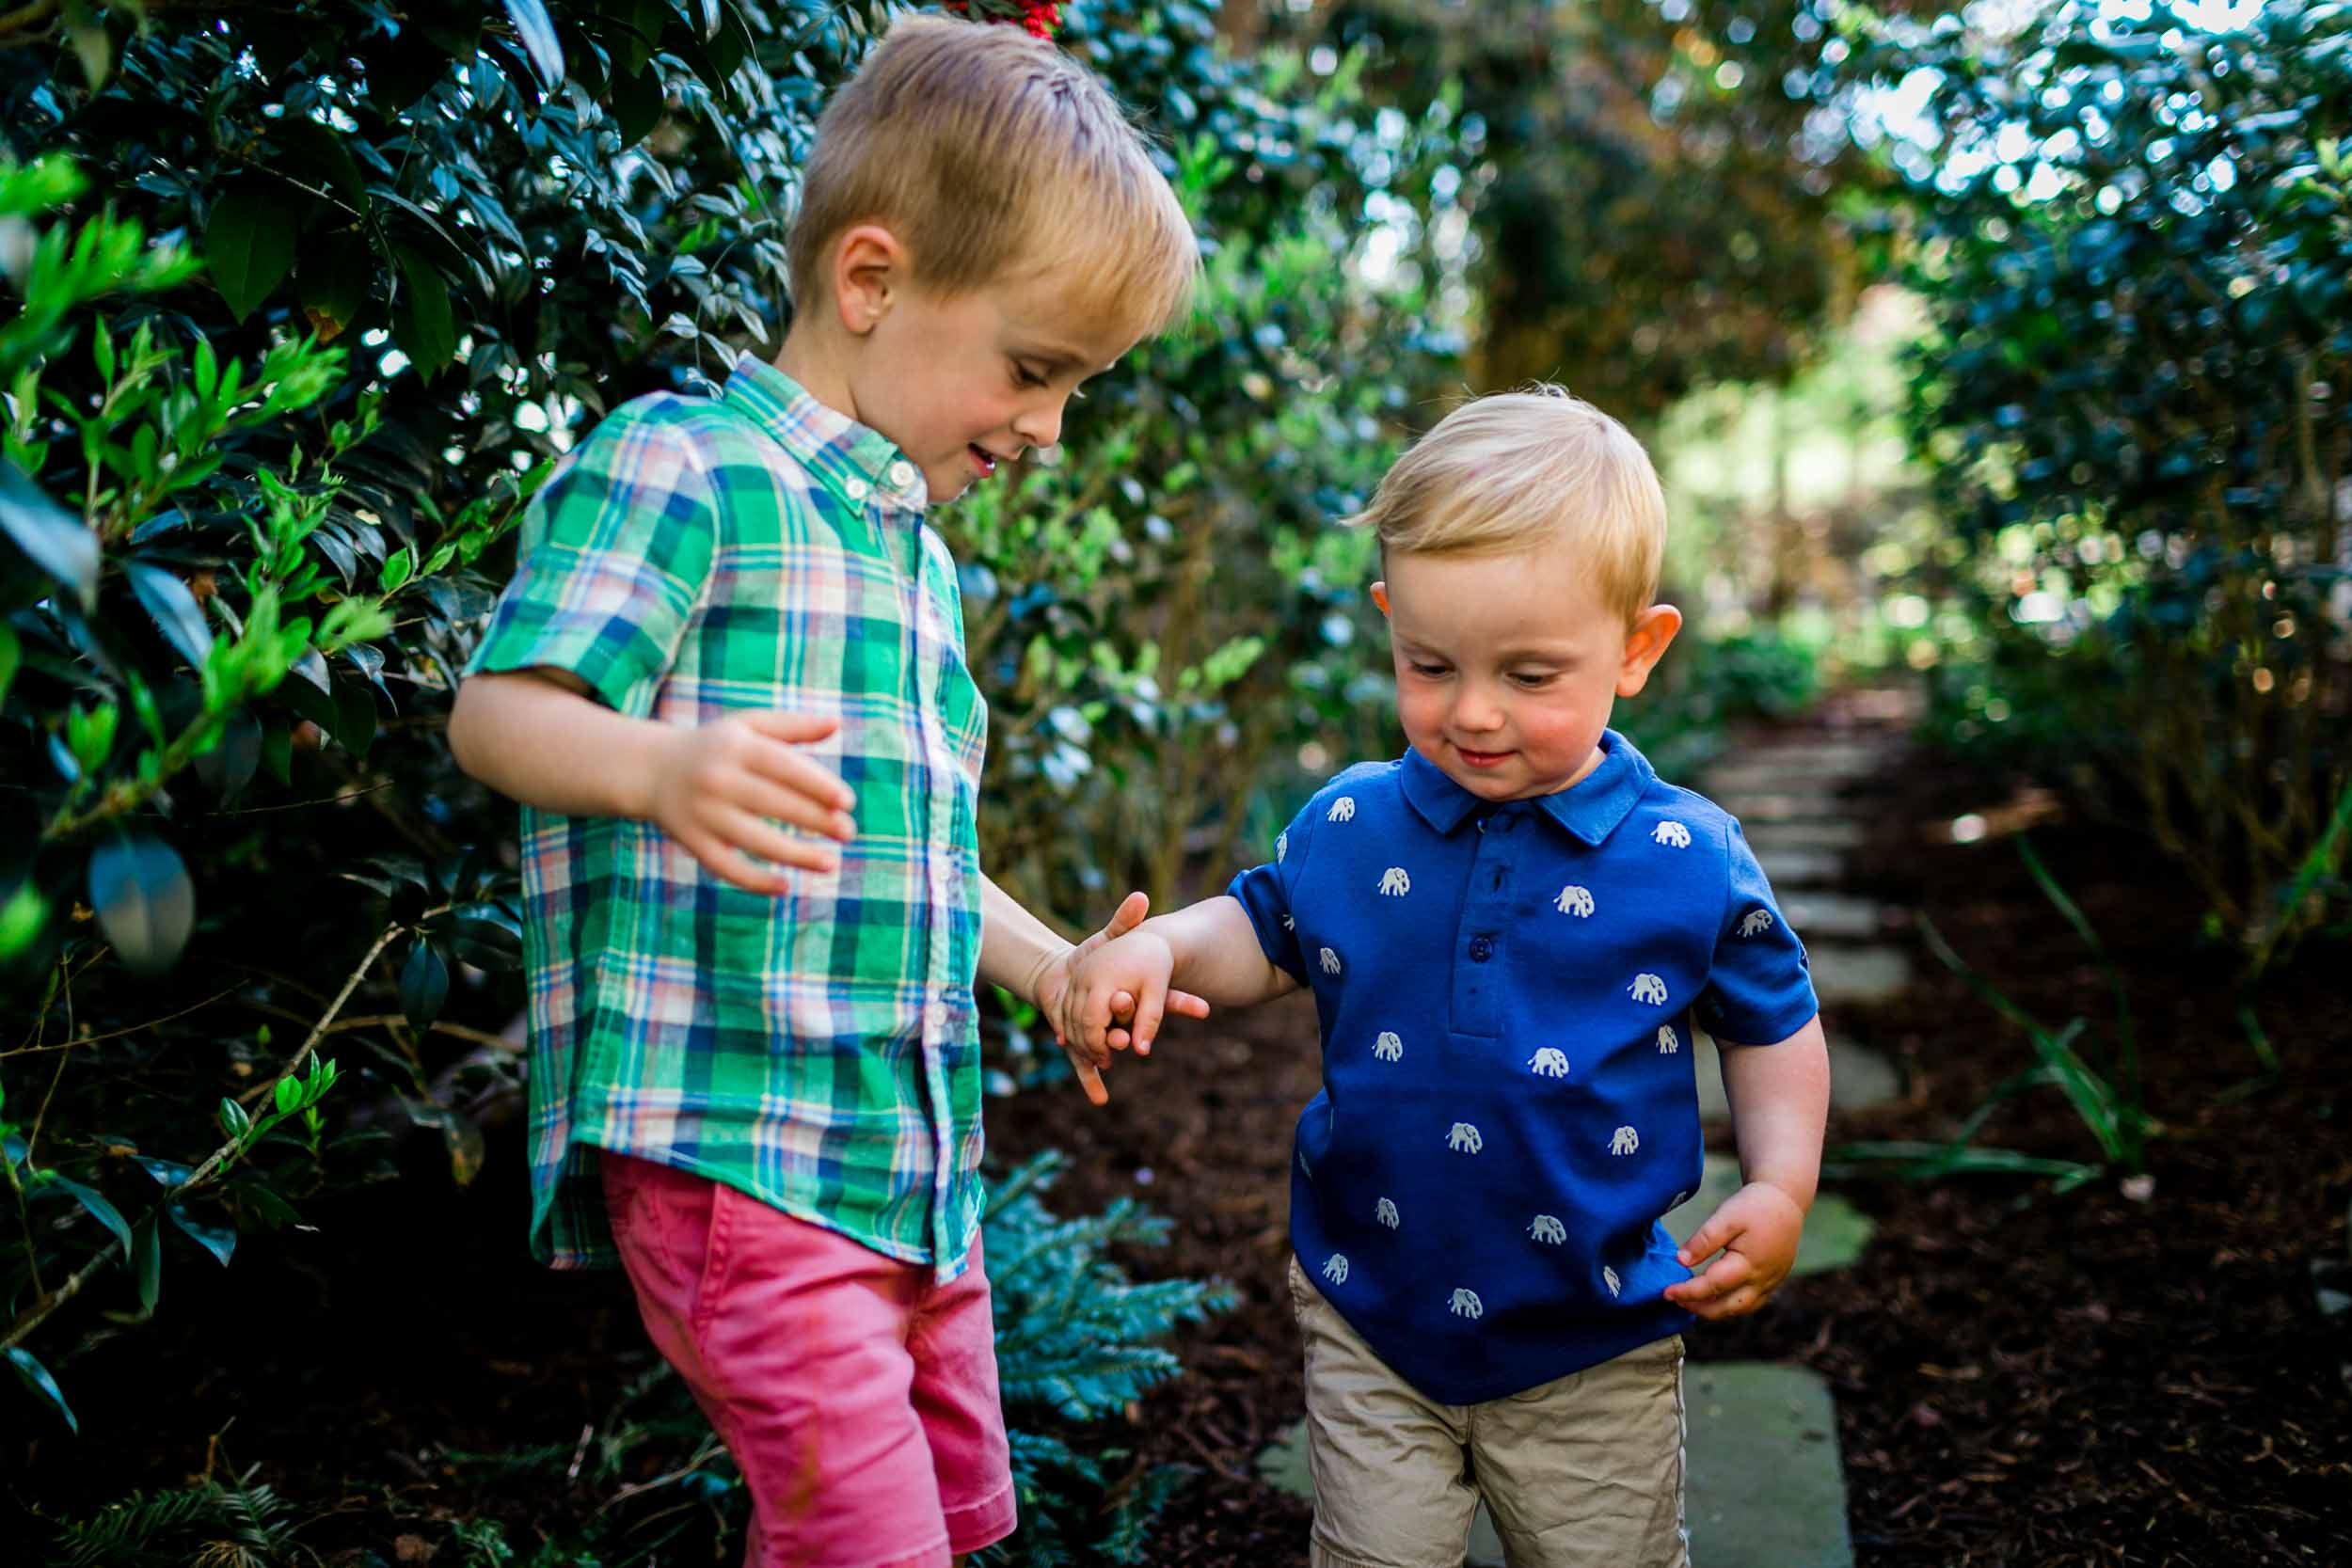 Brothers walking together outside | Raleigh Family Photographer | By G. Lin Photography